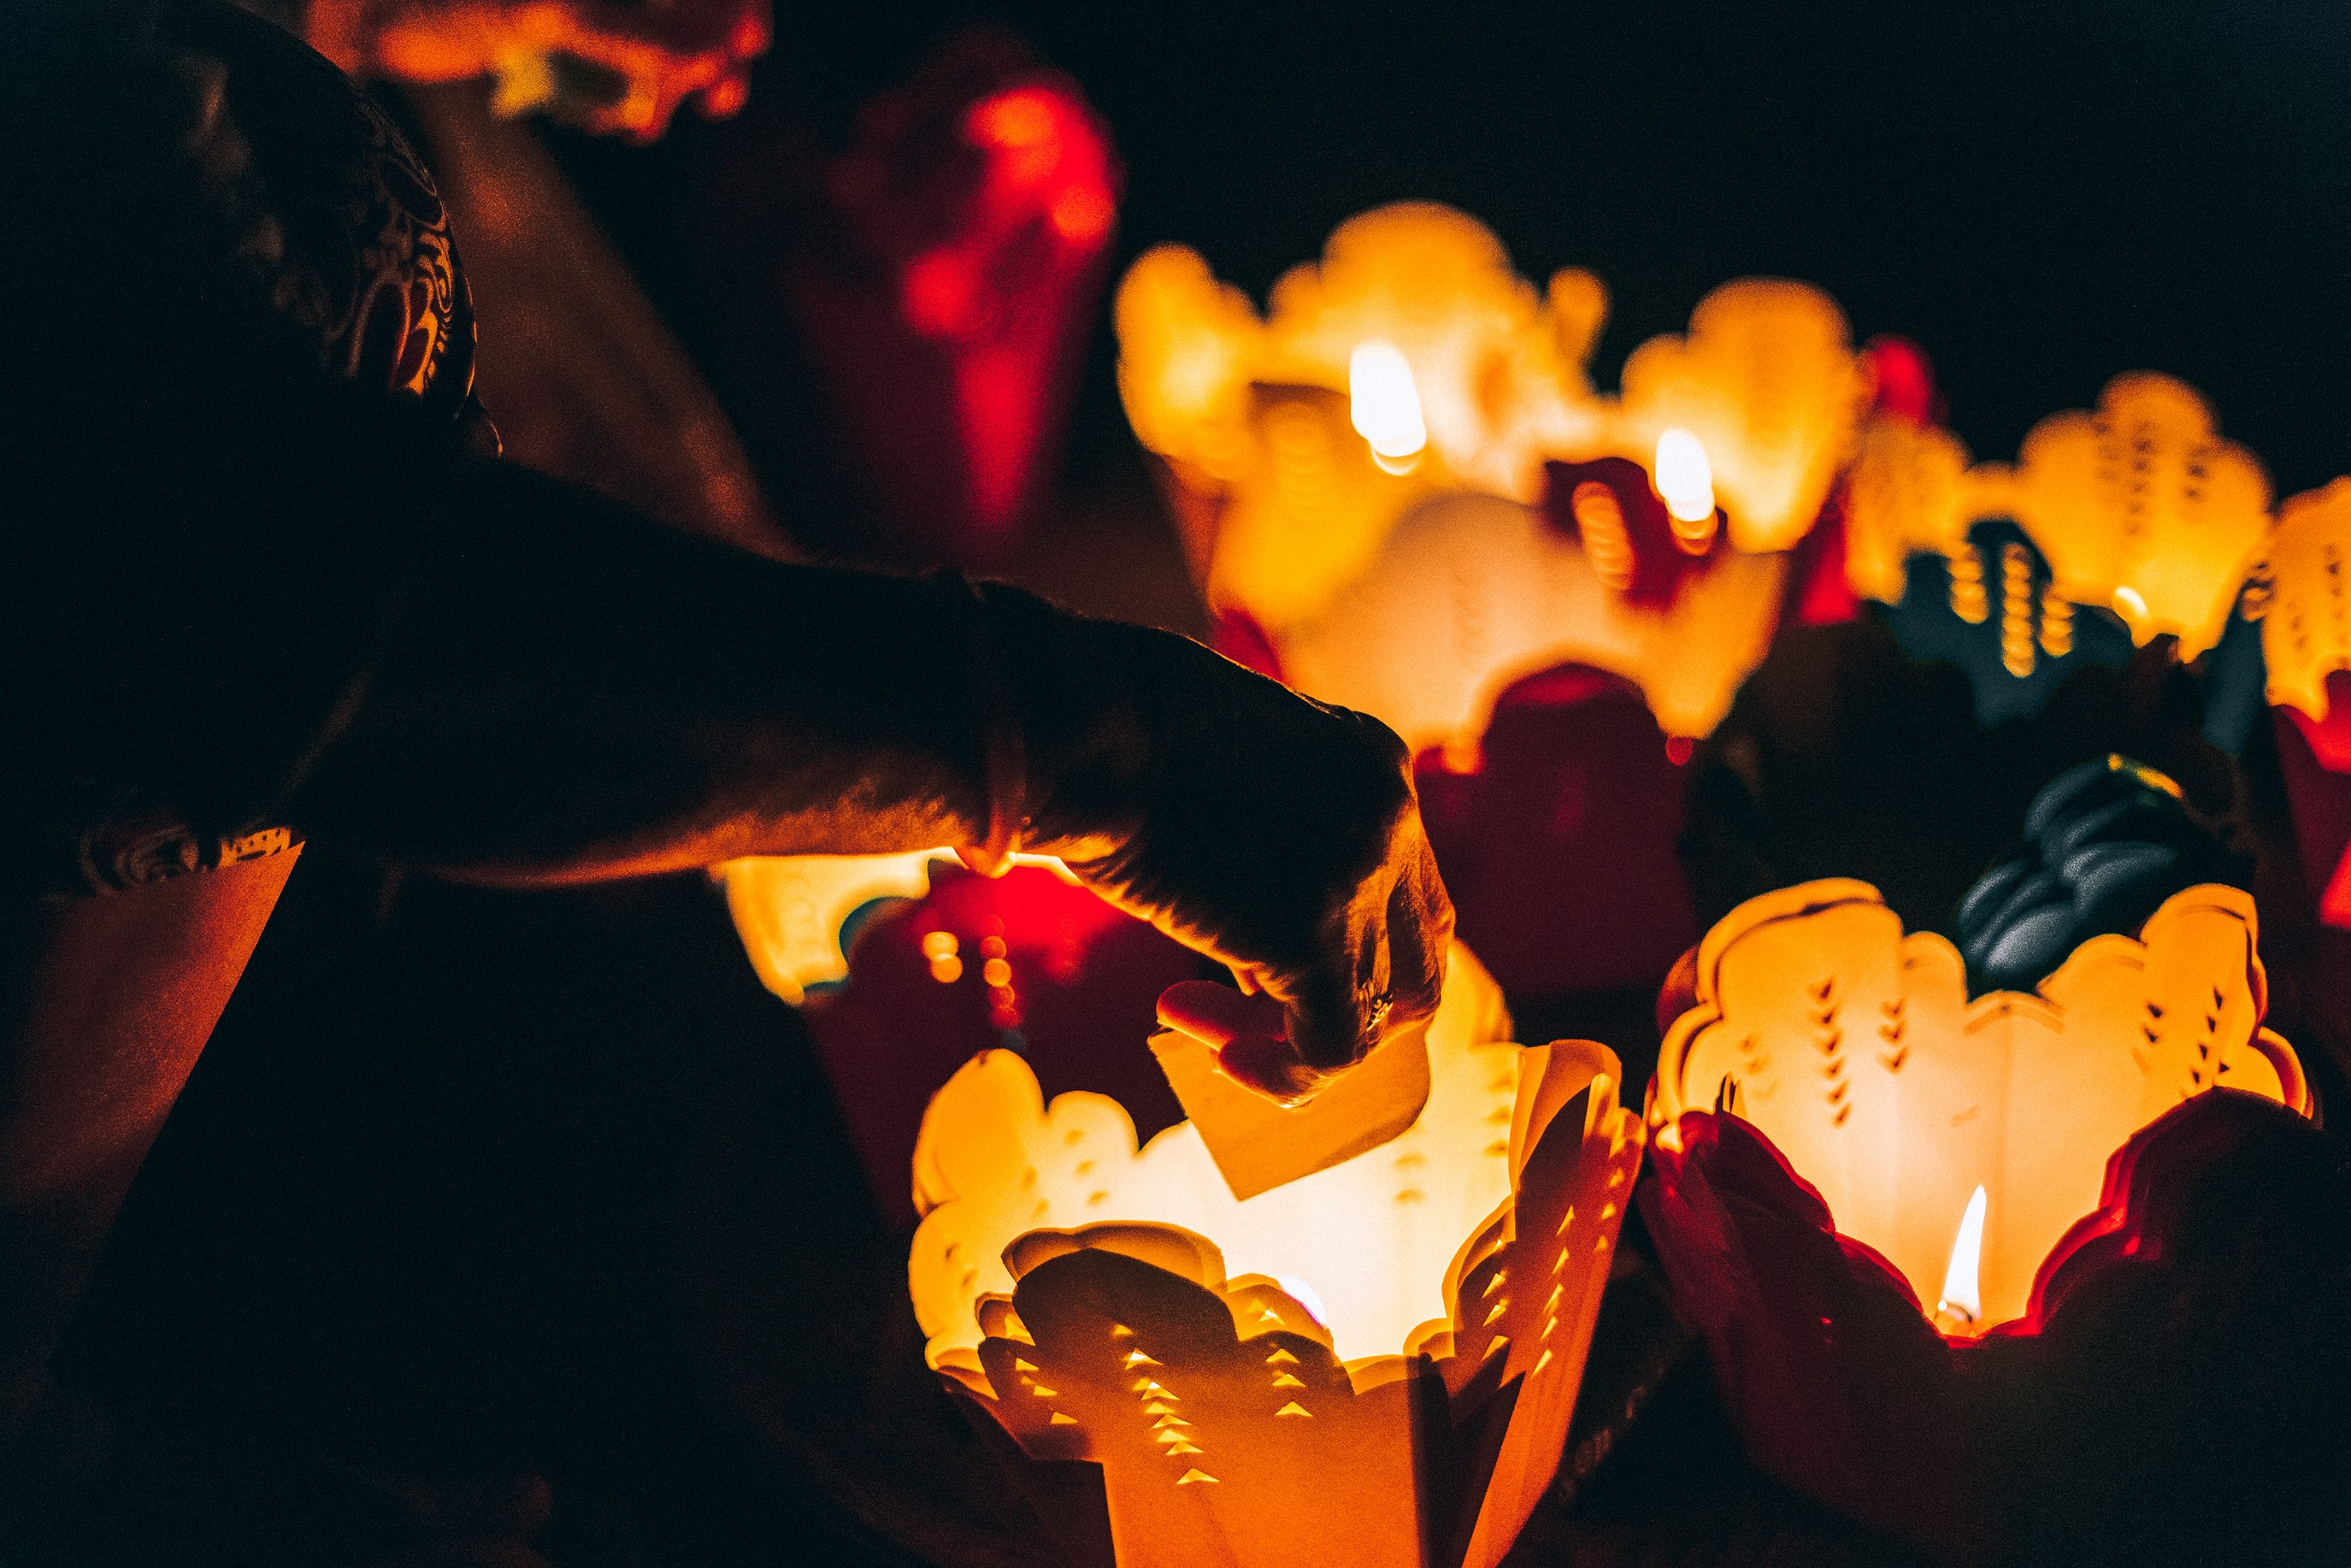 Person places candles inside paper takeout container lanterns